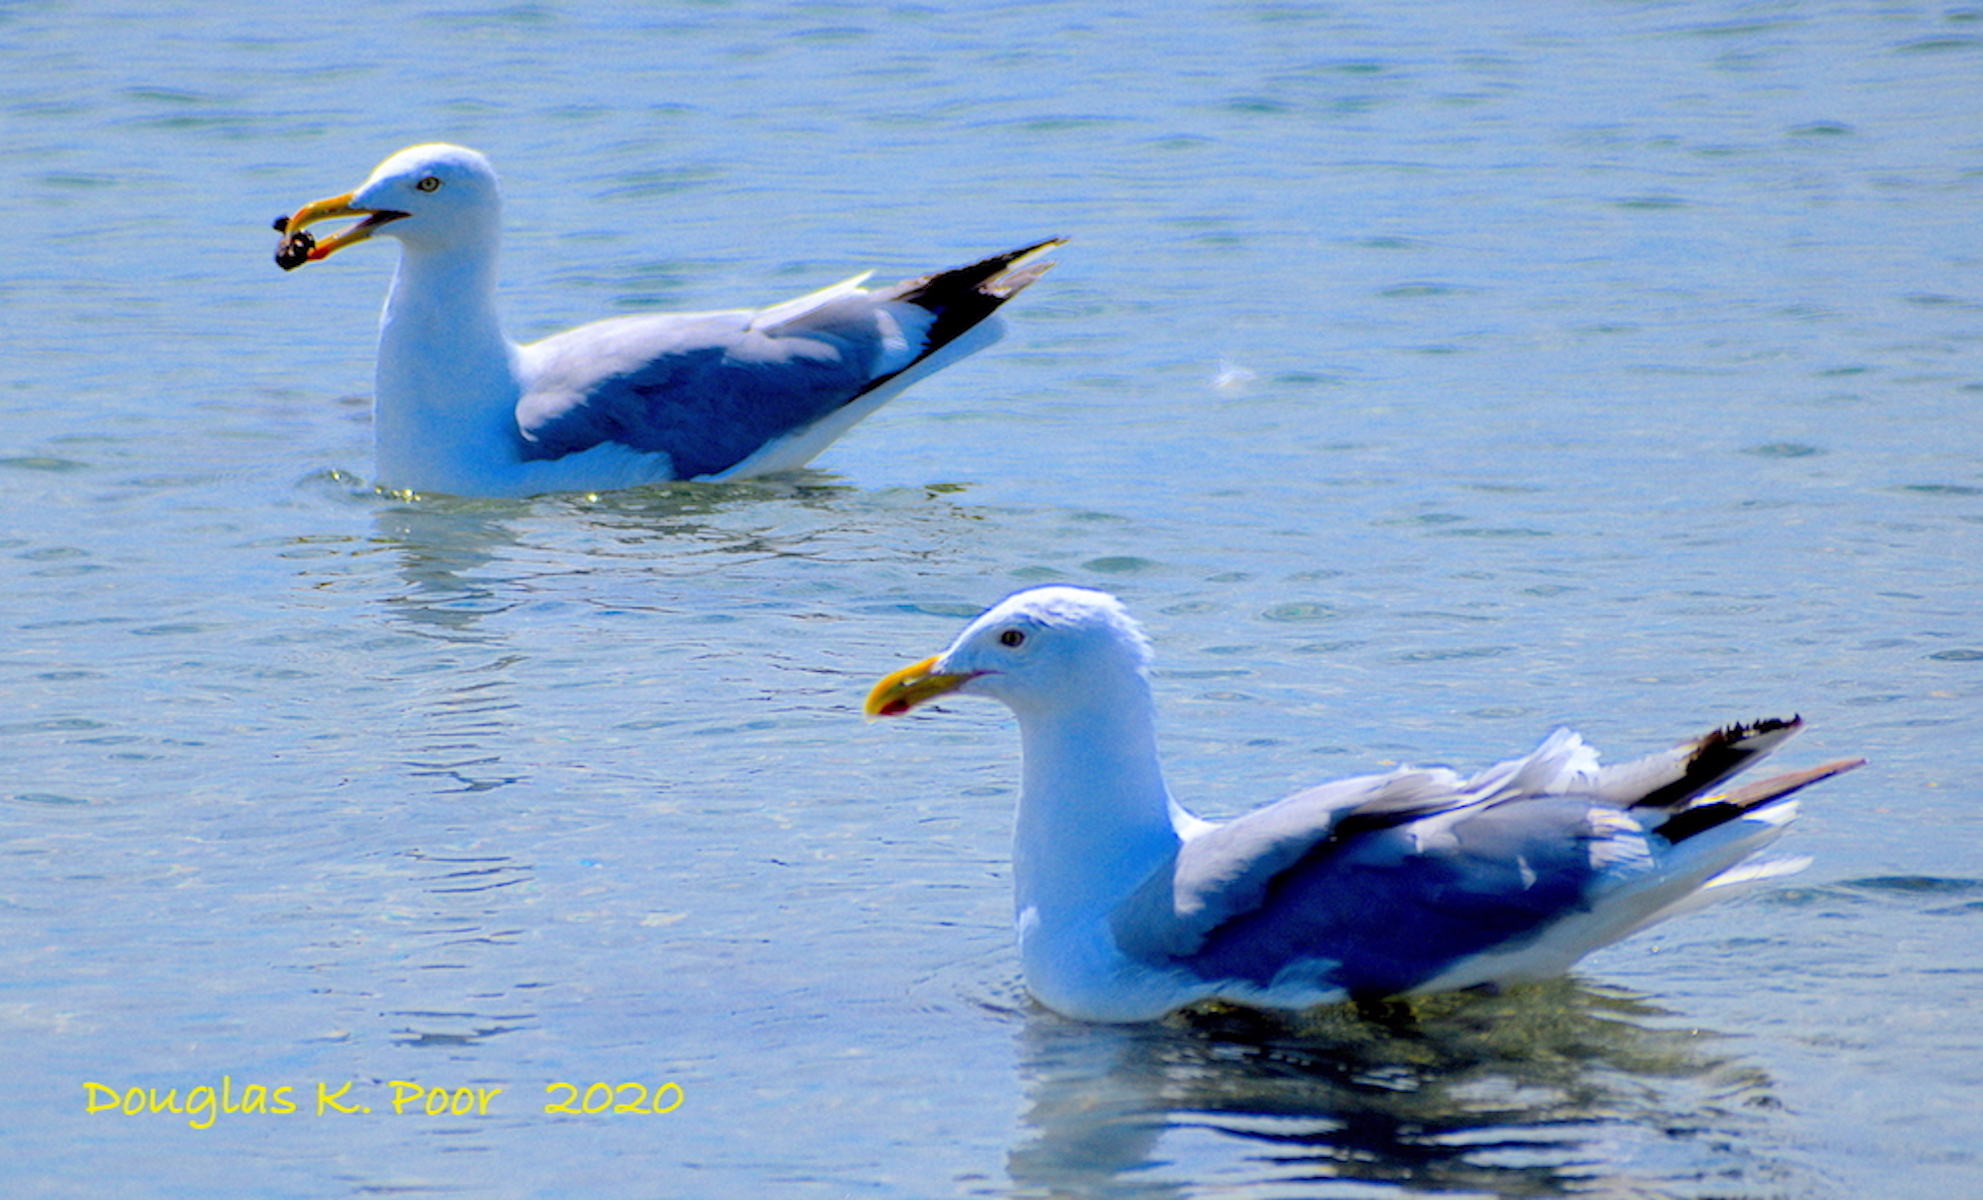 2 SEAGULLS SWIMMING IN TANDEM PHOTO BY DOUGLAS K. POOR